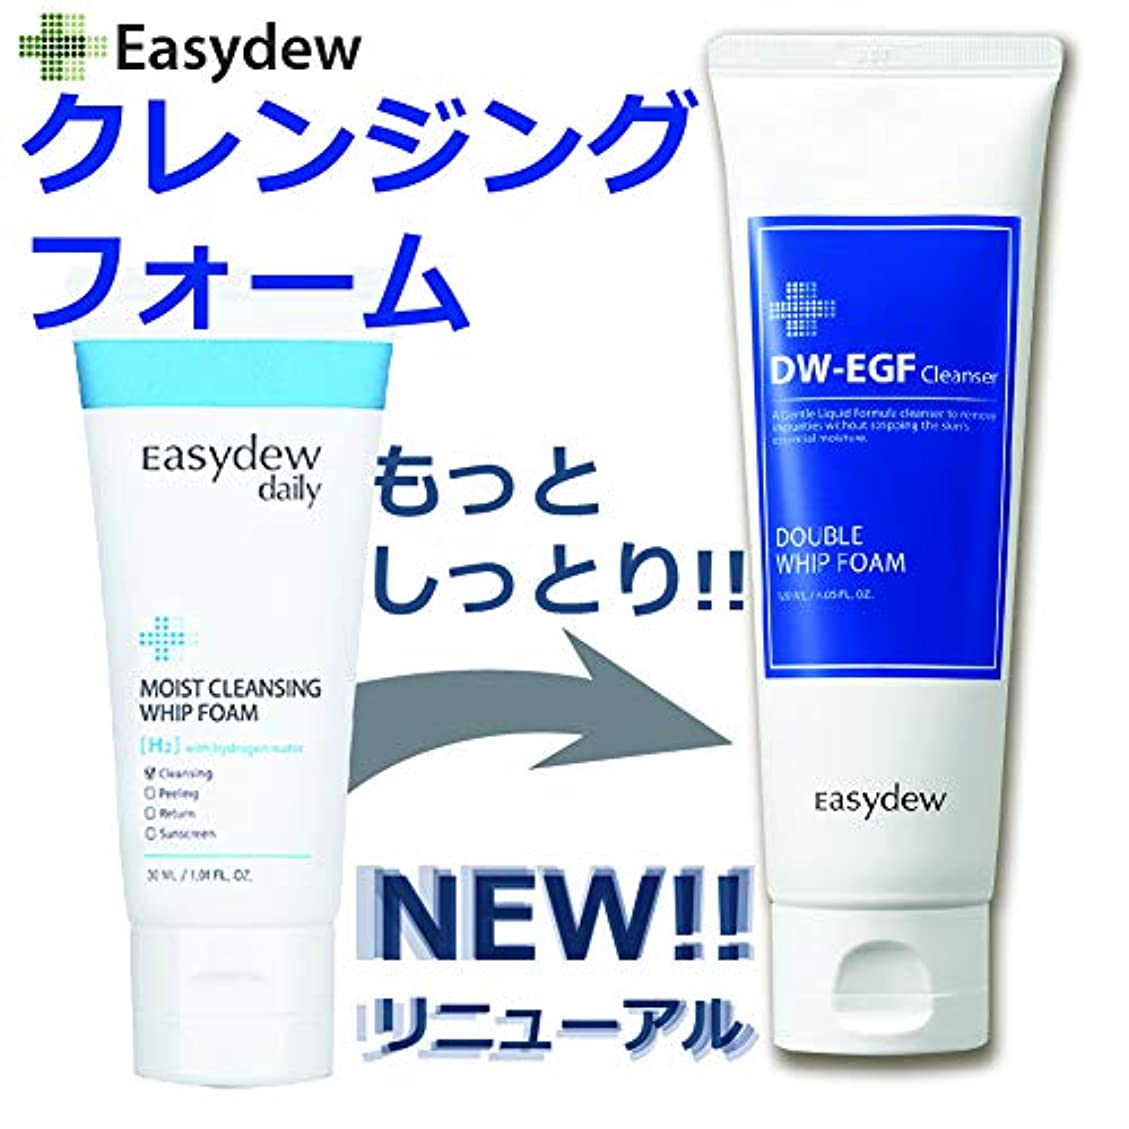 EASYDEW DW-EGF ダブル ホイップ フォーム 120ml EASYDEW DW Double Cleansing Whip Foam120ml